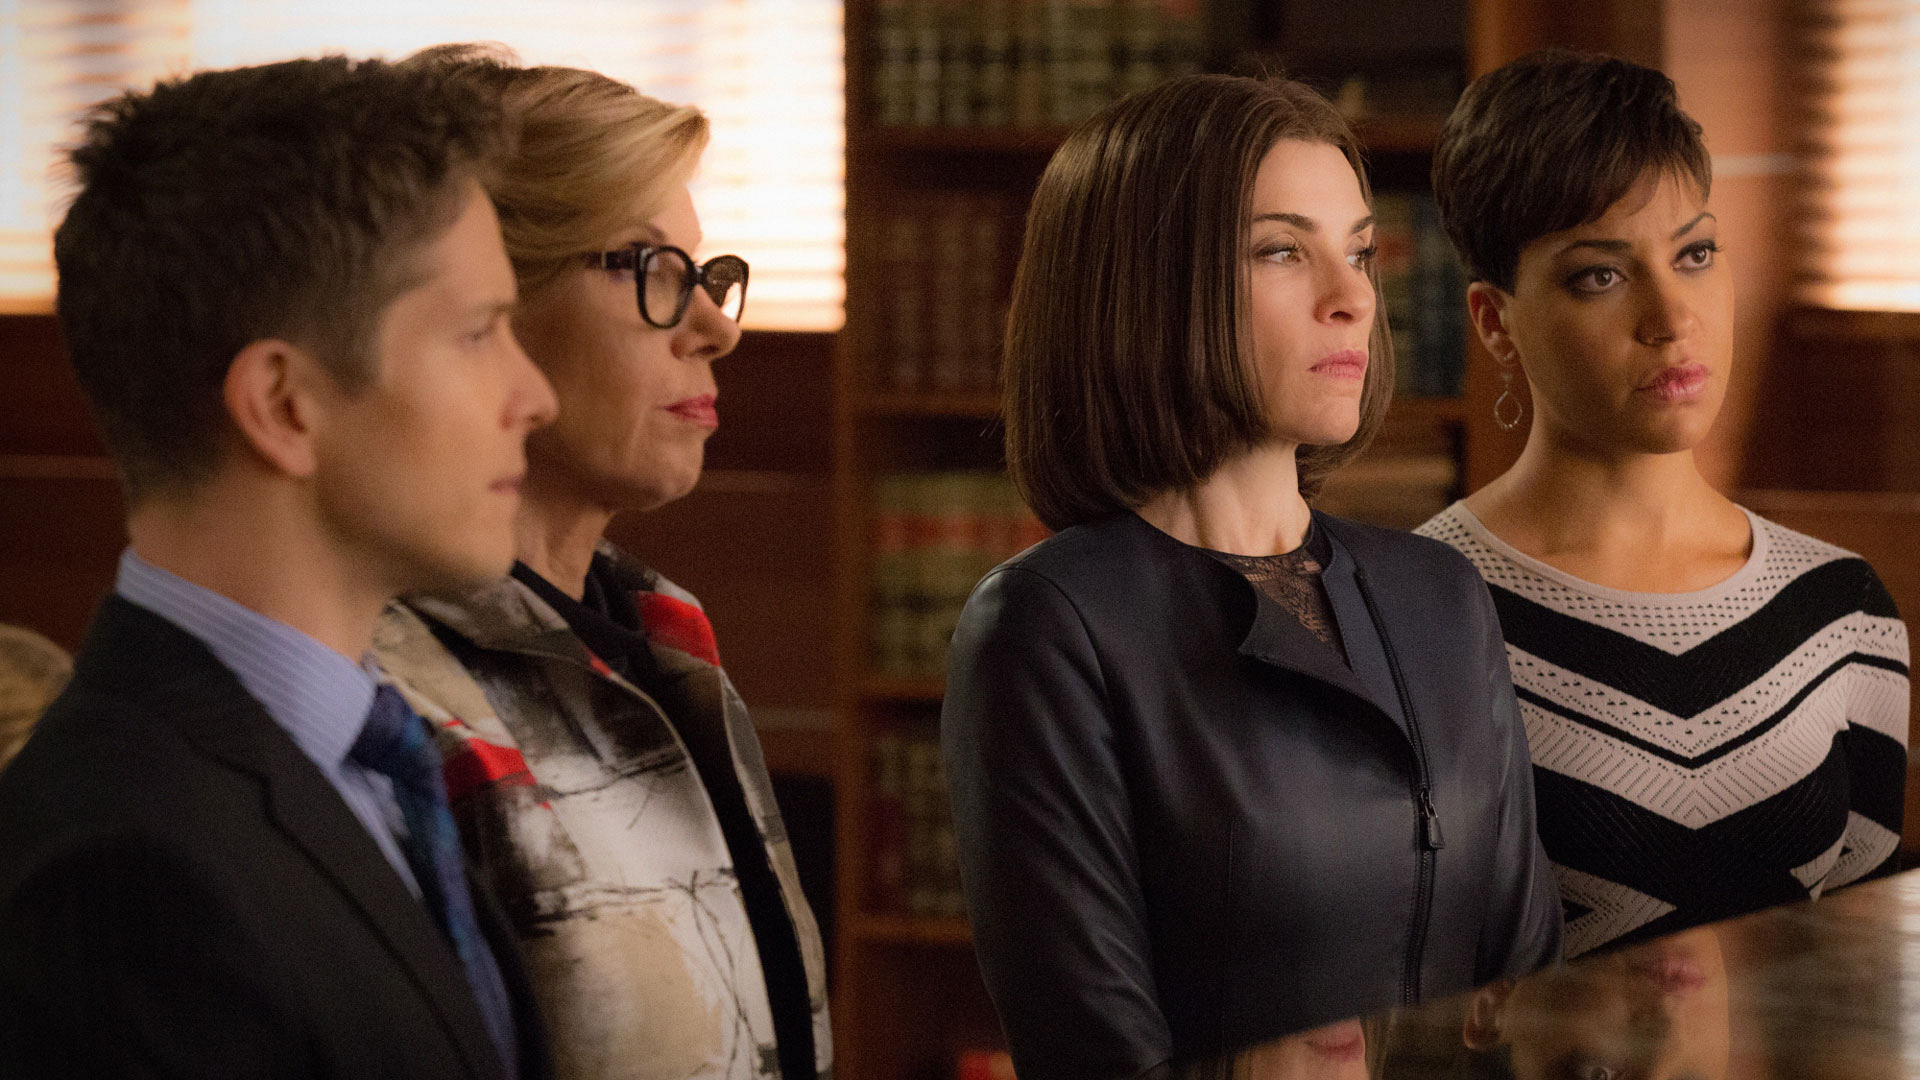 Matt Czuchry as Cary Agos, Christine Baranski as Diane Lockhart, Julianna Margulies as Alicia Florrick, and Cush Jumbo as Lucca Quinn